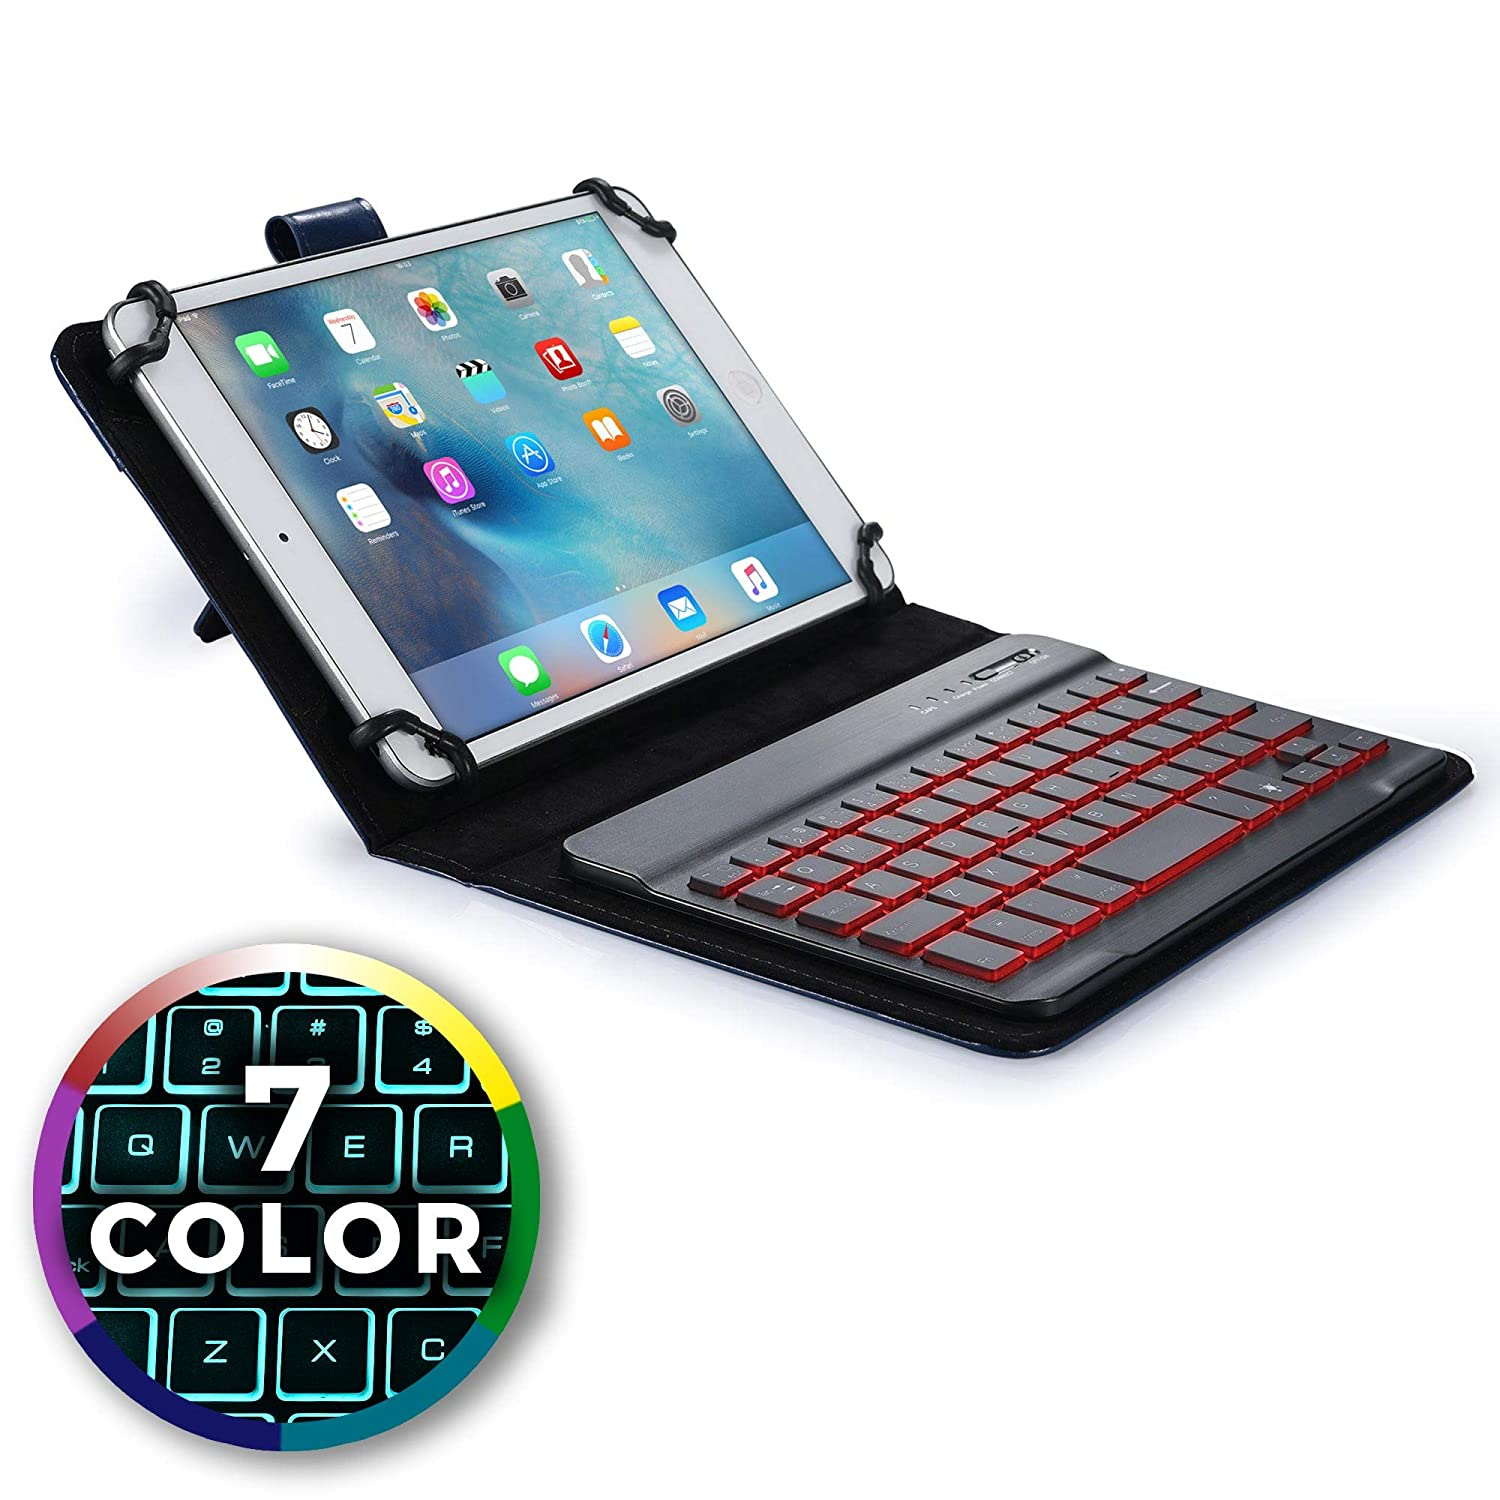 7980c1cb426 Cooper Backlight Executive Keyboard case for 9'', 10'', 10.1'' inch Tablets  | 2-in-1 Bluetooth Wireless Backlit Keyboard & Leather Folio Cover | 7  Color LED ...